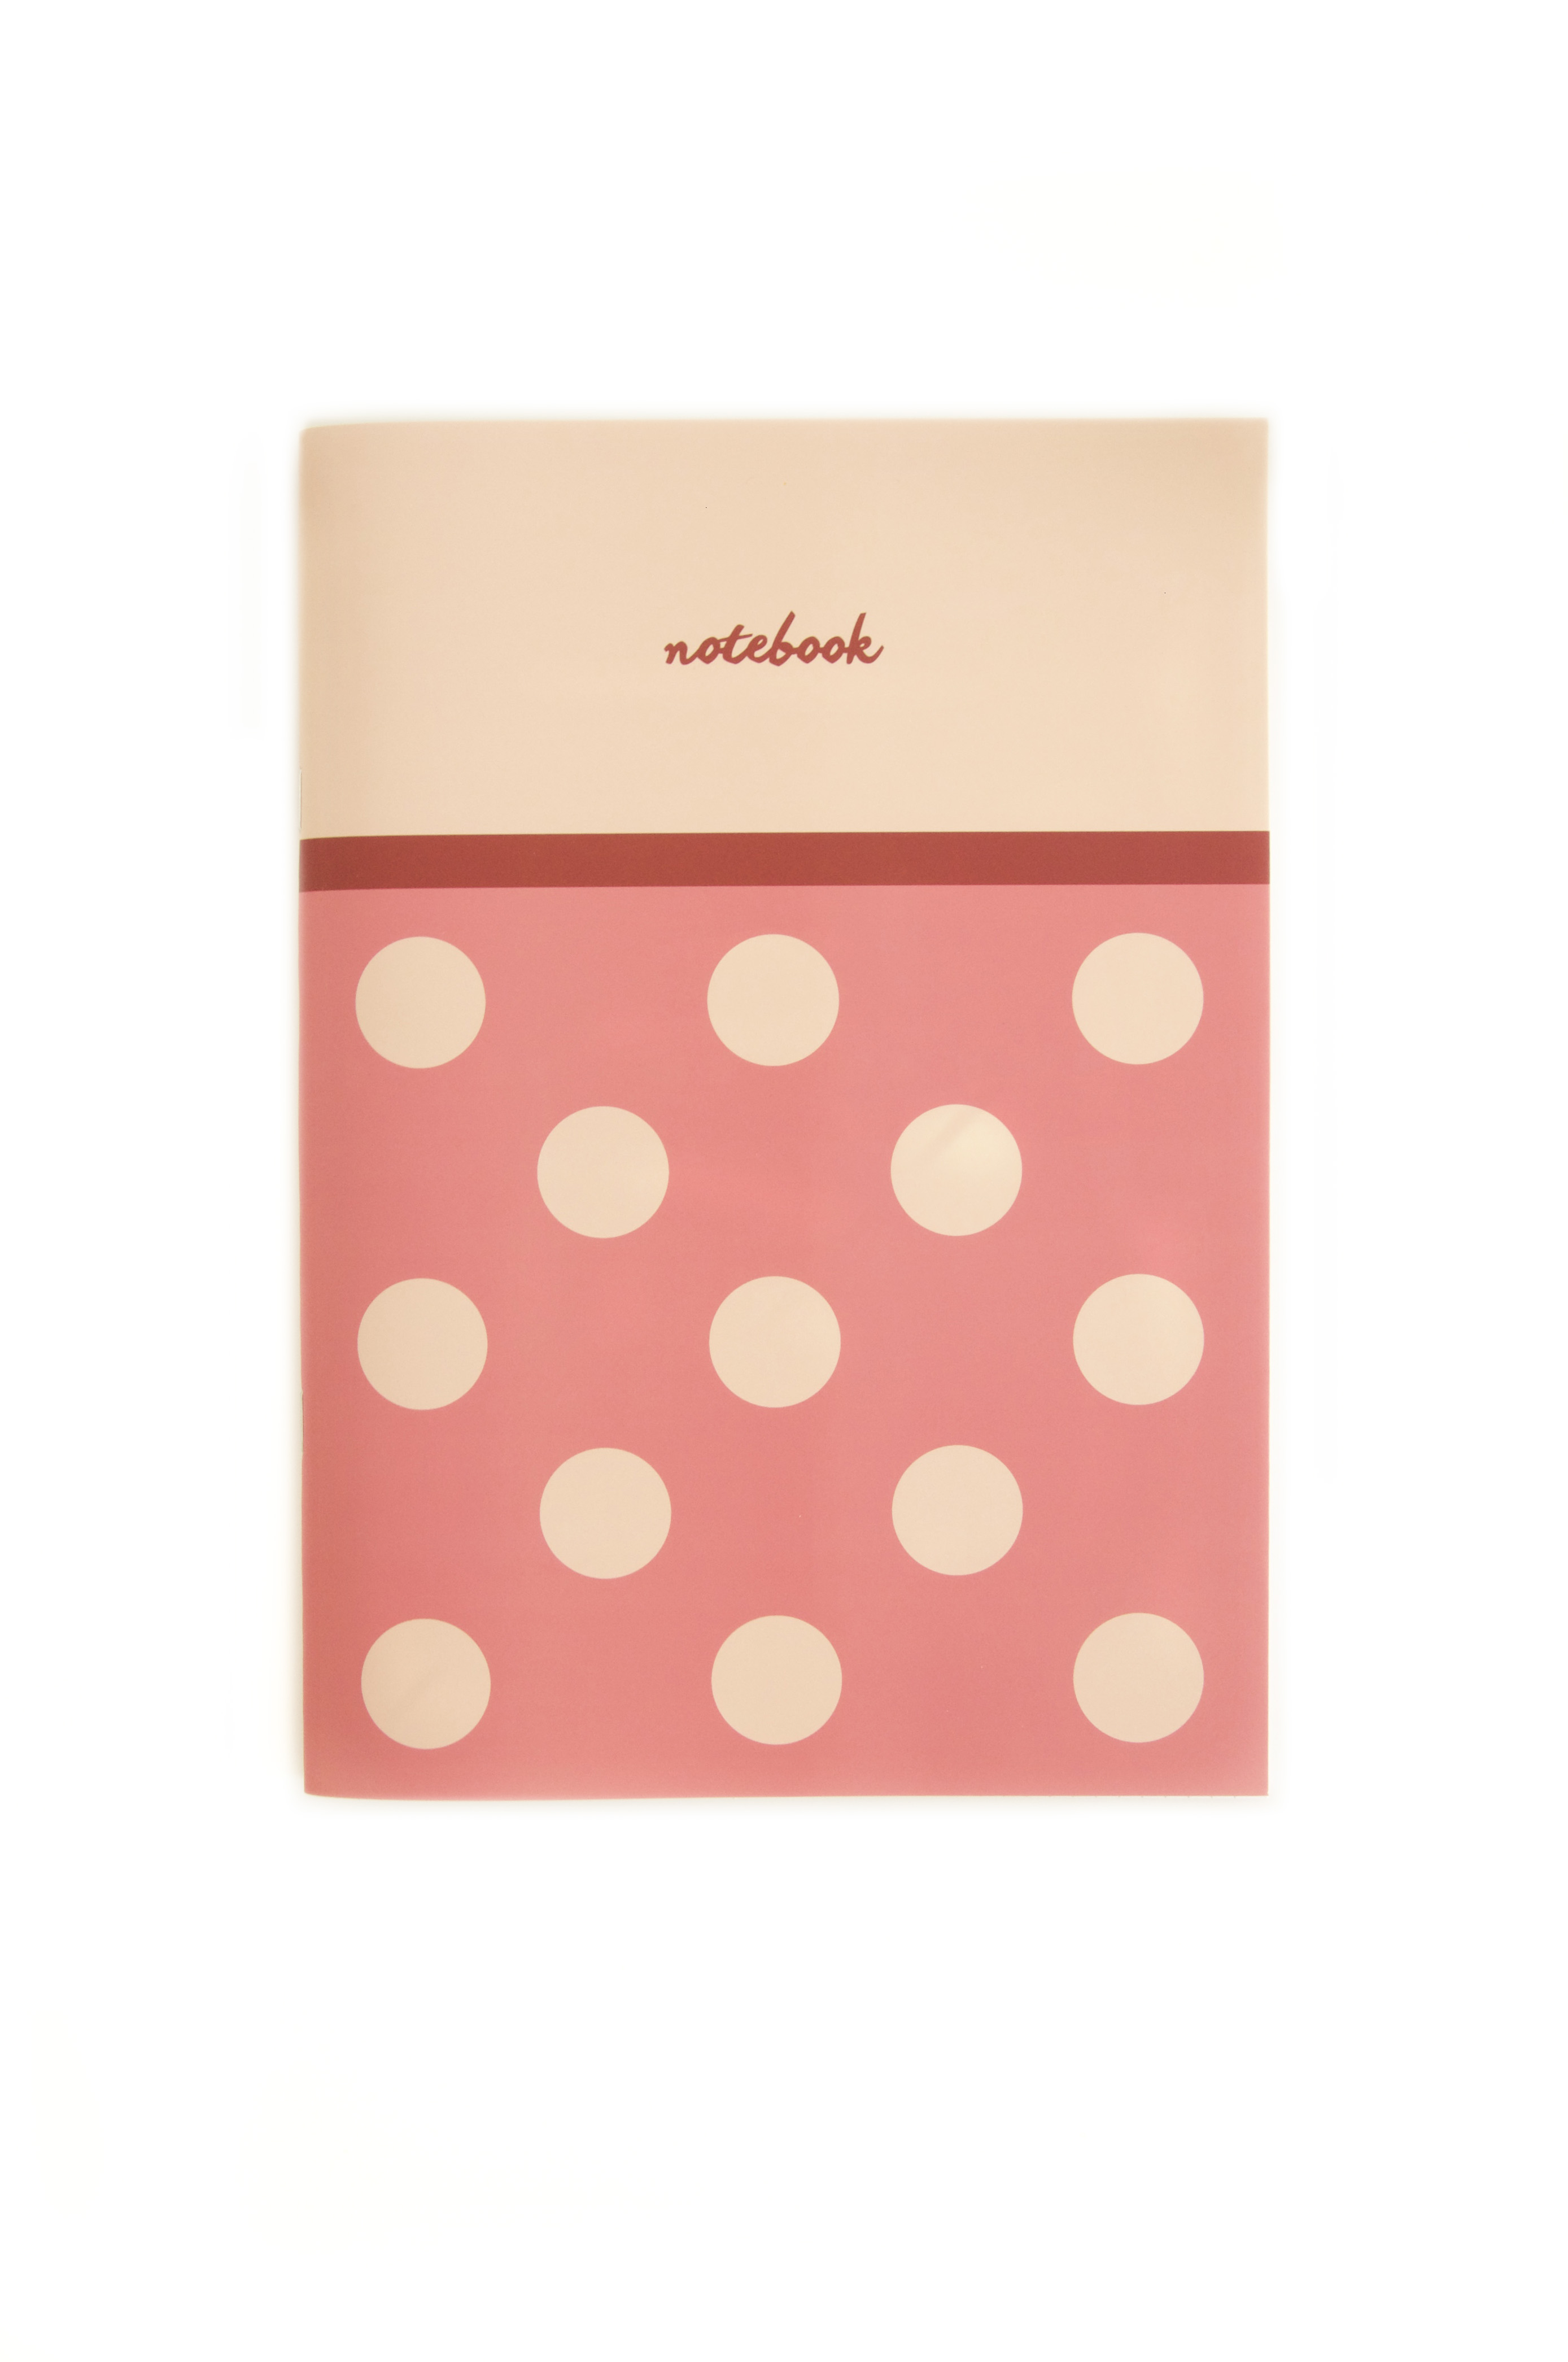 Big Polka Dots // A4 Arithmetic Notebook